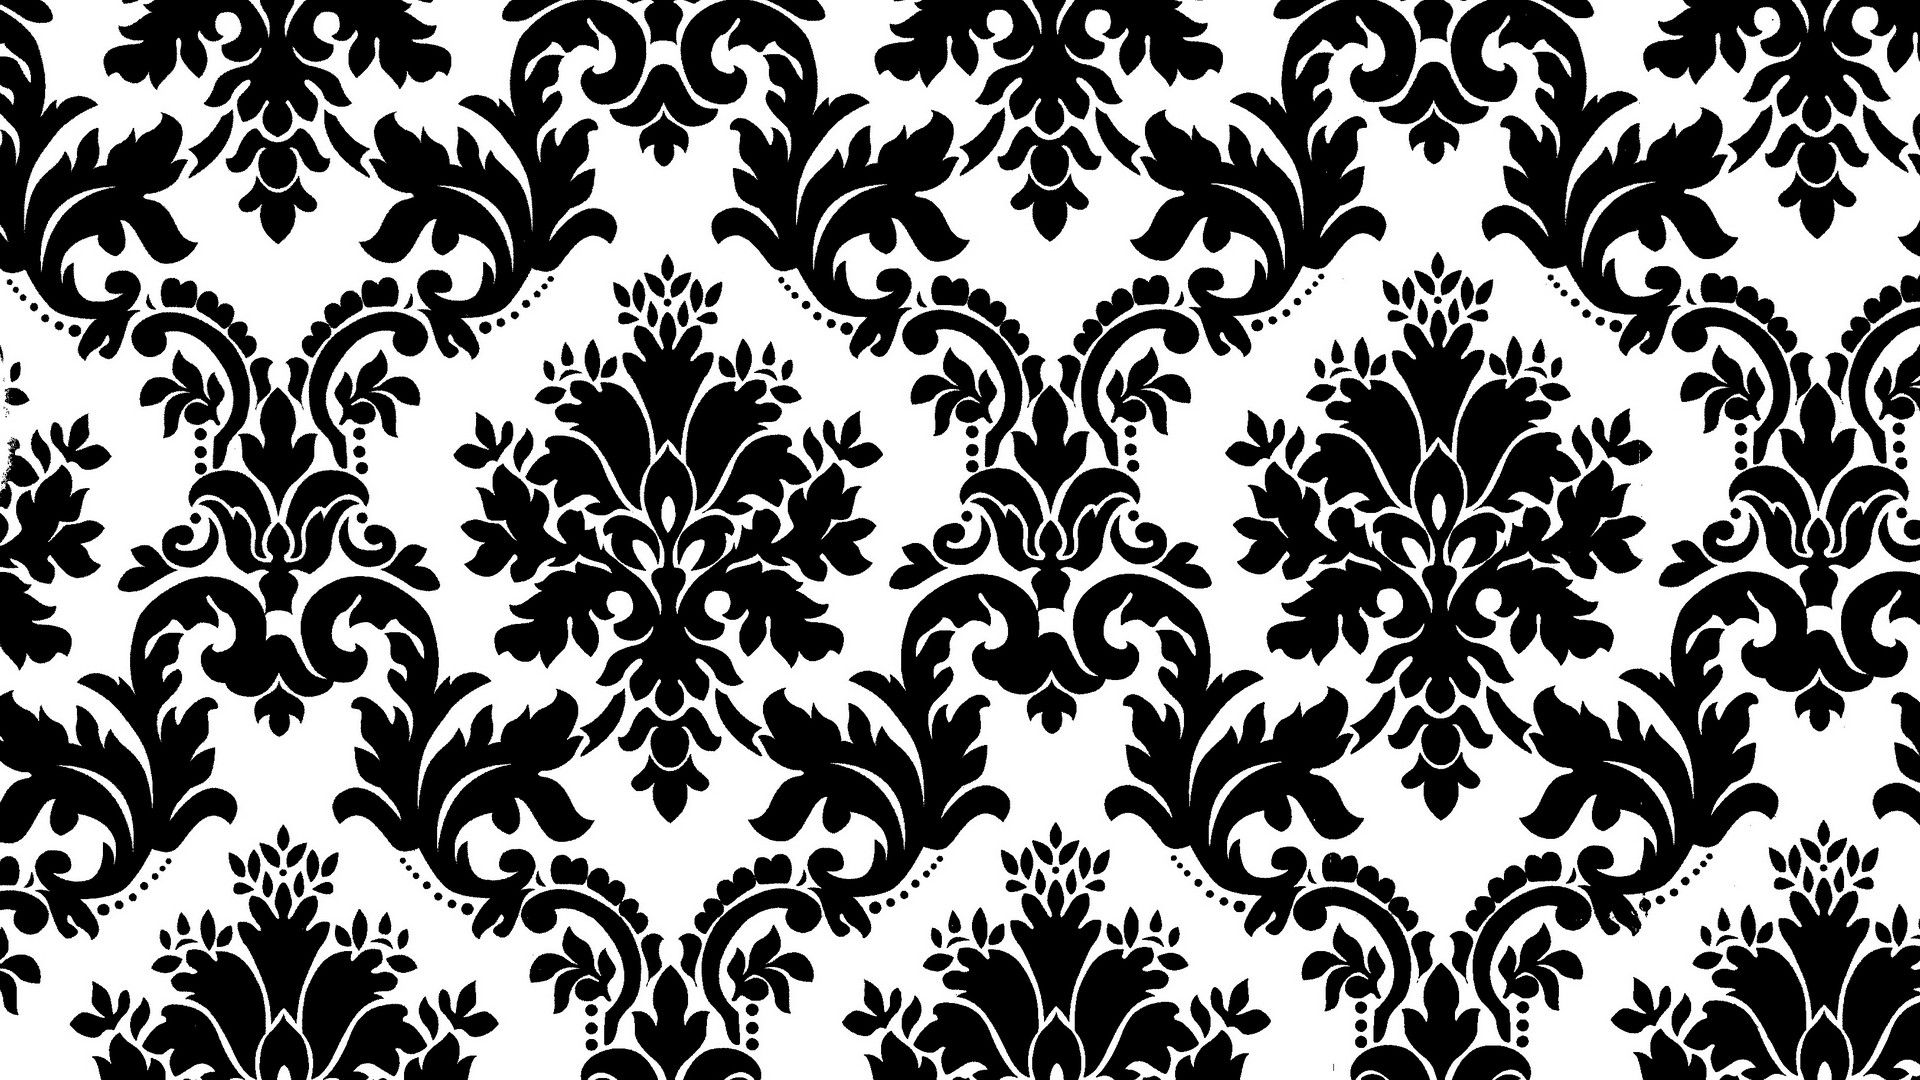 Black And White Pattern Wallpapers Top Free Black And White Pattern Backgrounds Wallpaperaccess